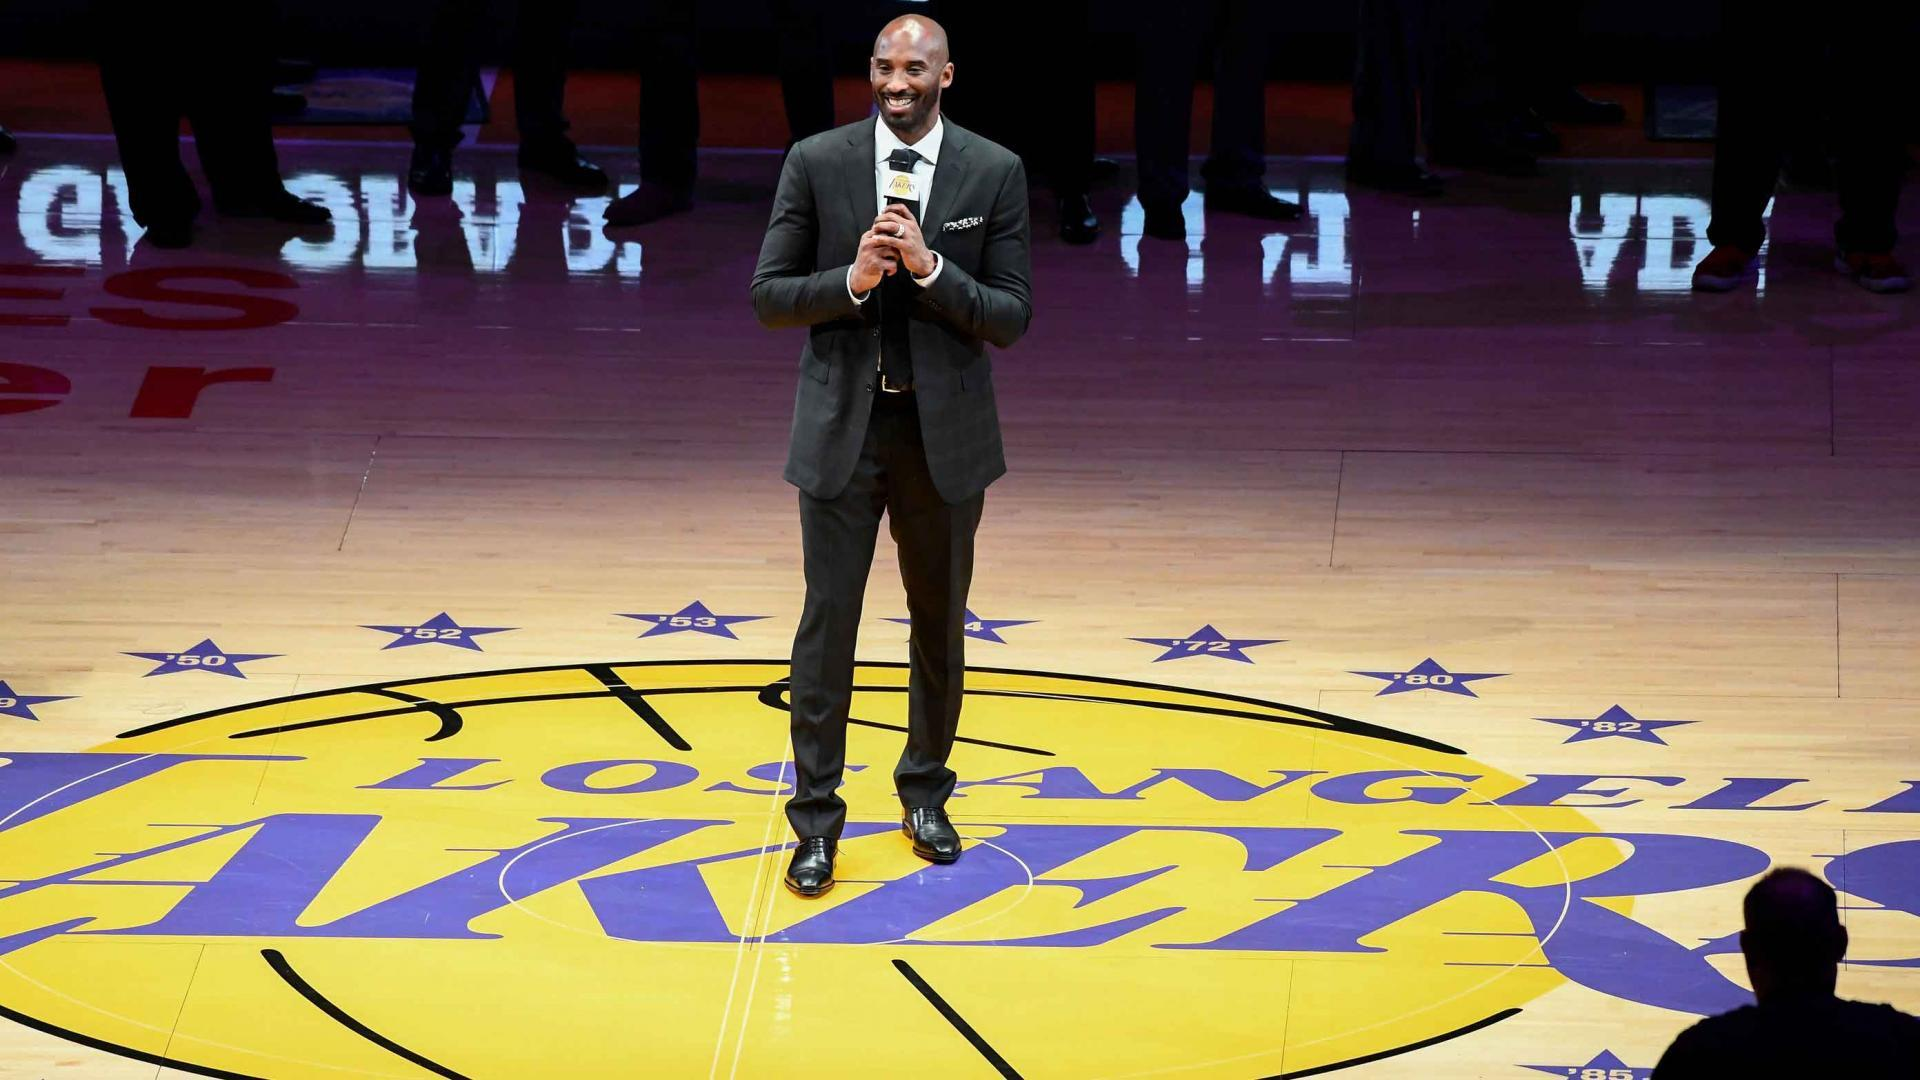 ebe1a7d6386 Watch Full Recap of Kobe Bryant s Jersey Retirement. Take a look back at  the Los Angeles Lakers ...